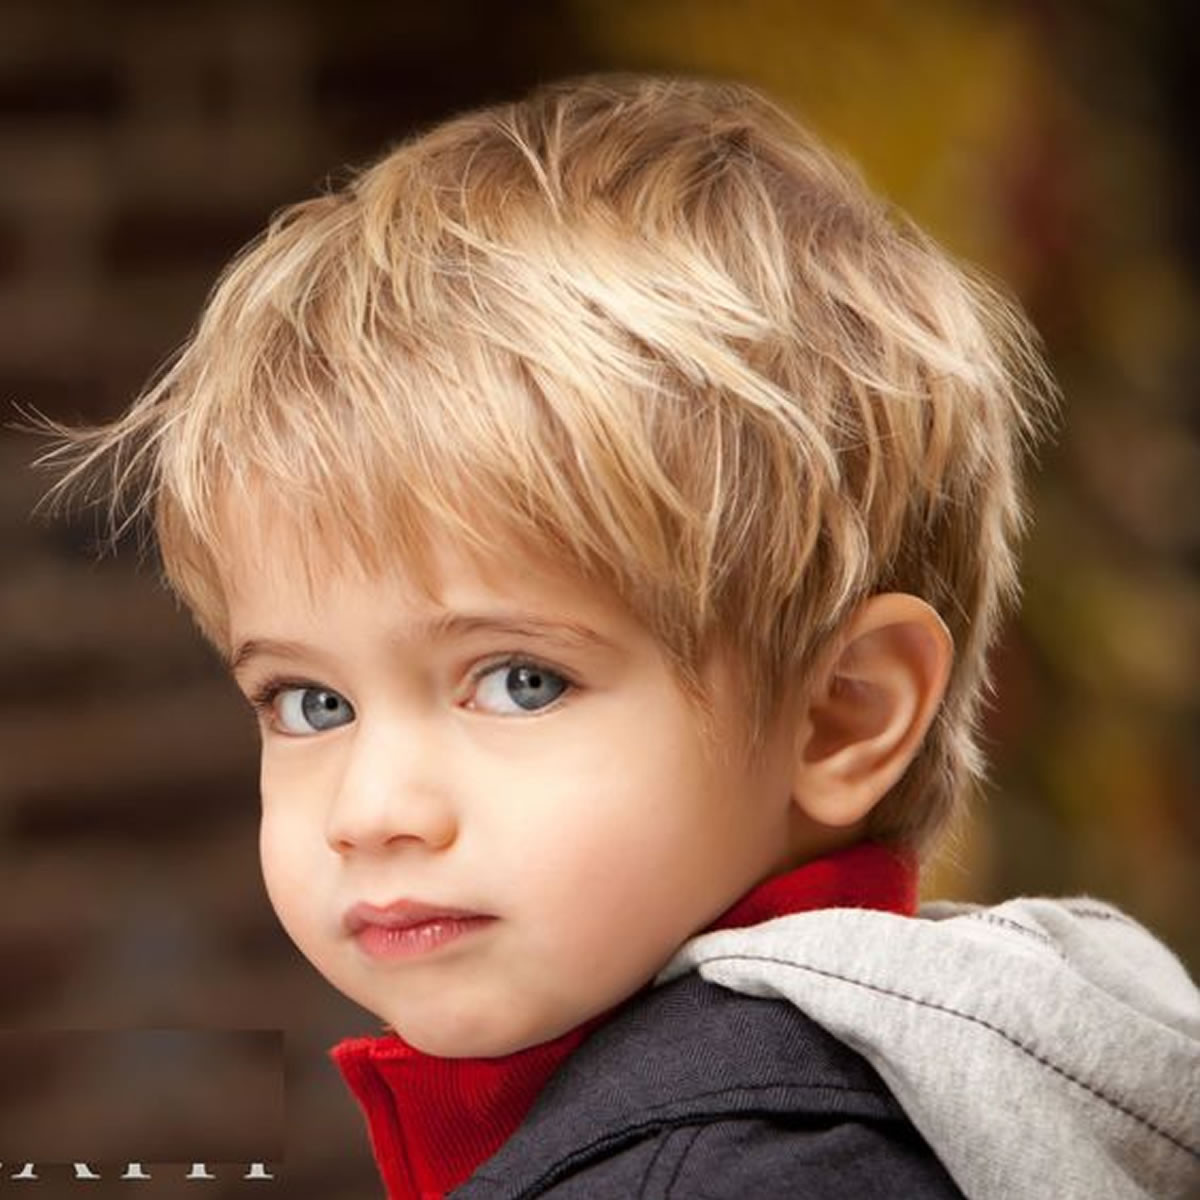 Best ideas about Cool Boys Haircuts 2019 . Save or Pin Great Hairstyles and Haircuts ideas for Little Boys 2018 Now.